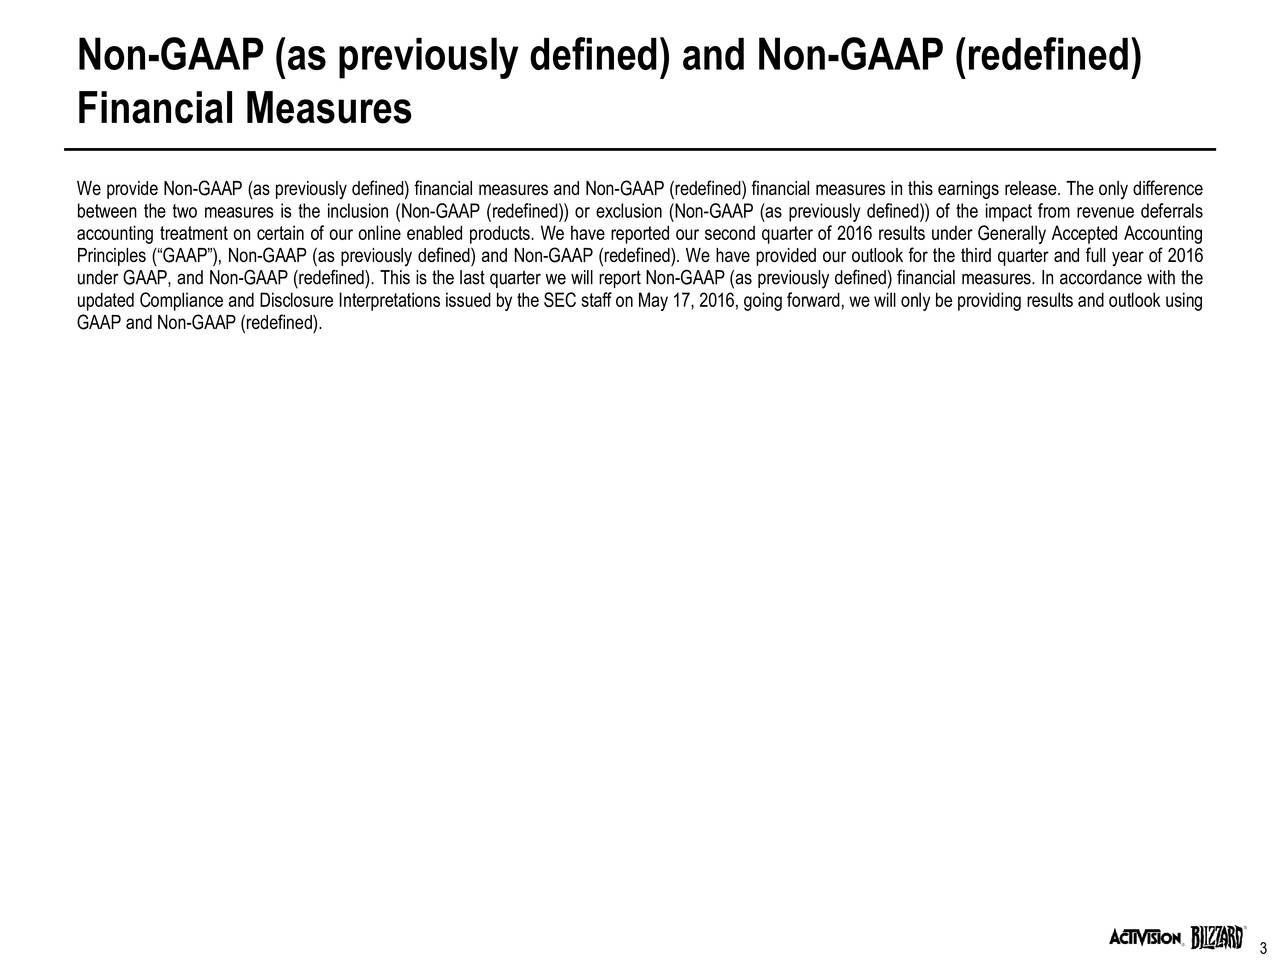 Financial Measures We provide Non-GAAP (as previously defined) financial measures and Non-GAAP (redefined) financial measures in this earnings release. The only difference between the two measures is the inclusion (Non-GAAP (redefined)) or exclusion (Non-GAAP (as previously defined)) of the impact from revenue deferrals accounting treatment on certain of our online enabled products. We have reported our second quarter of 2016 results under Generally Accepted Accounting Principles (GAAP), Non-GAAP (as previously defined) and Non-GAAP (redefined). We have provided our outlook for the third quarter and full year of 2016 under GAAP, and Non-GAAP (redefined). This is the last quarter we will report Non-GAAP (as previously defined) financial measures. In accordance with the updated Compliance and Disclosure Interpretations issued by the SEC staff on May 17, 2016, going forward, we will only be providing results and outlook using GAAP and Non-GAAP (redefined).